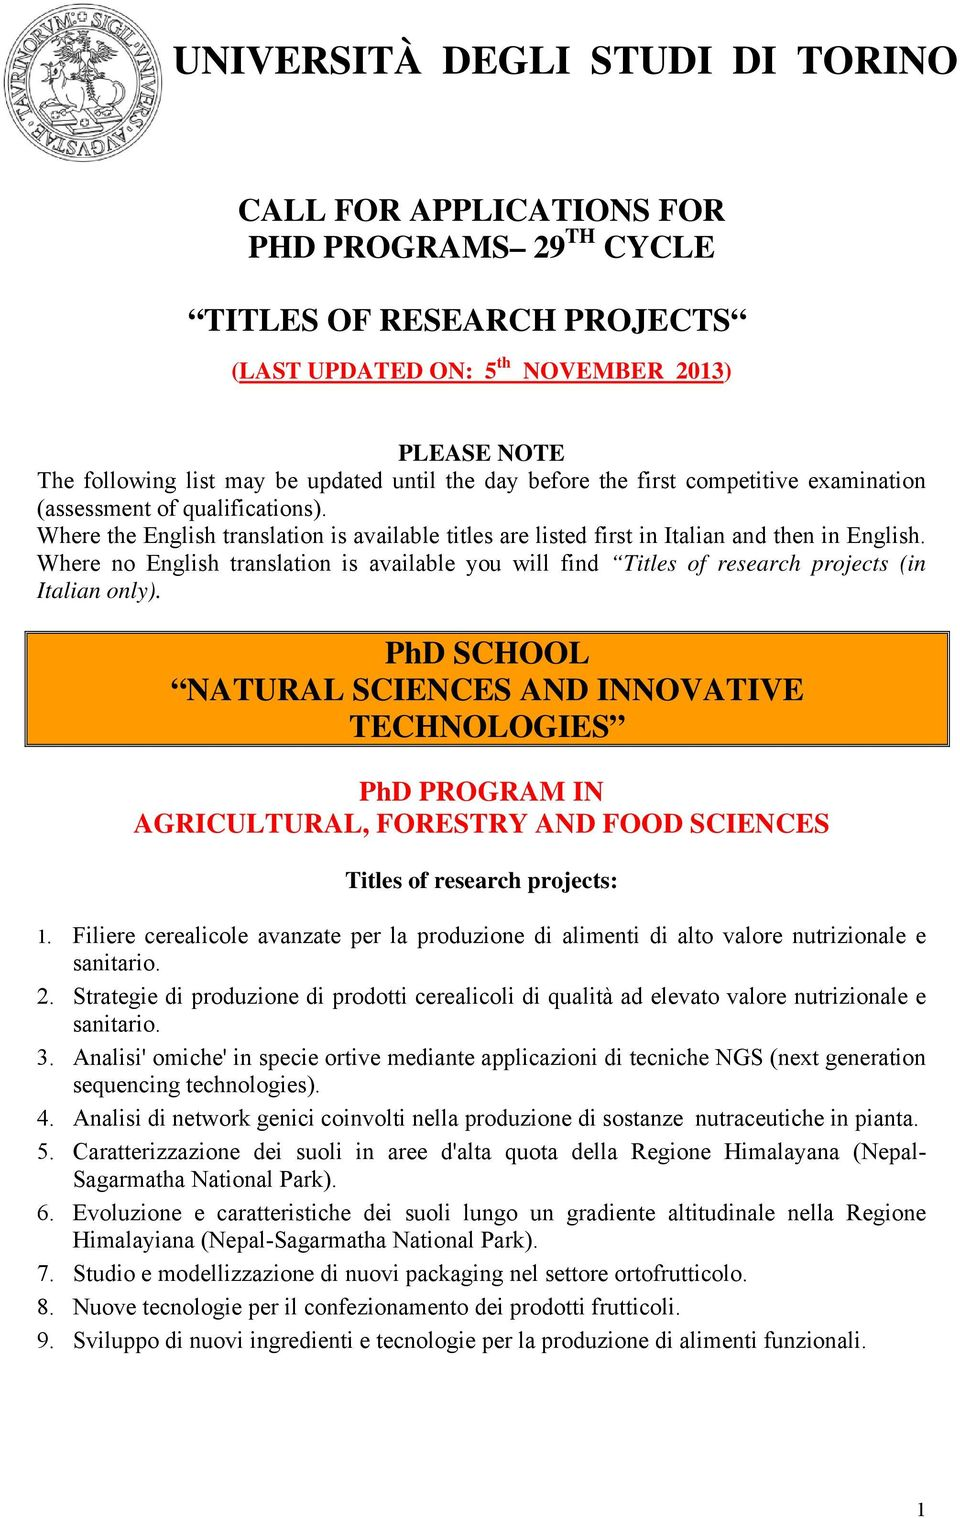 Where no English translation is available you will find Titles of research projects (in Italian only).